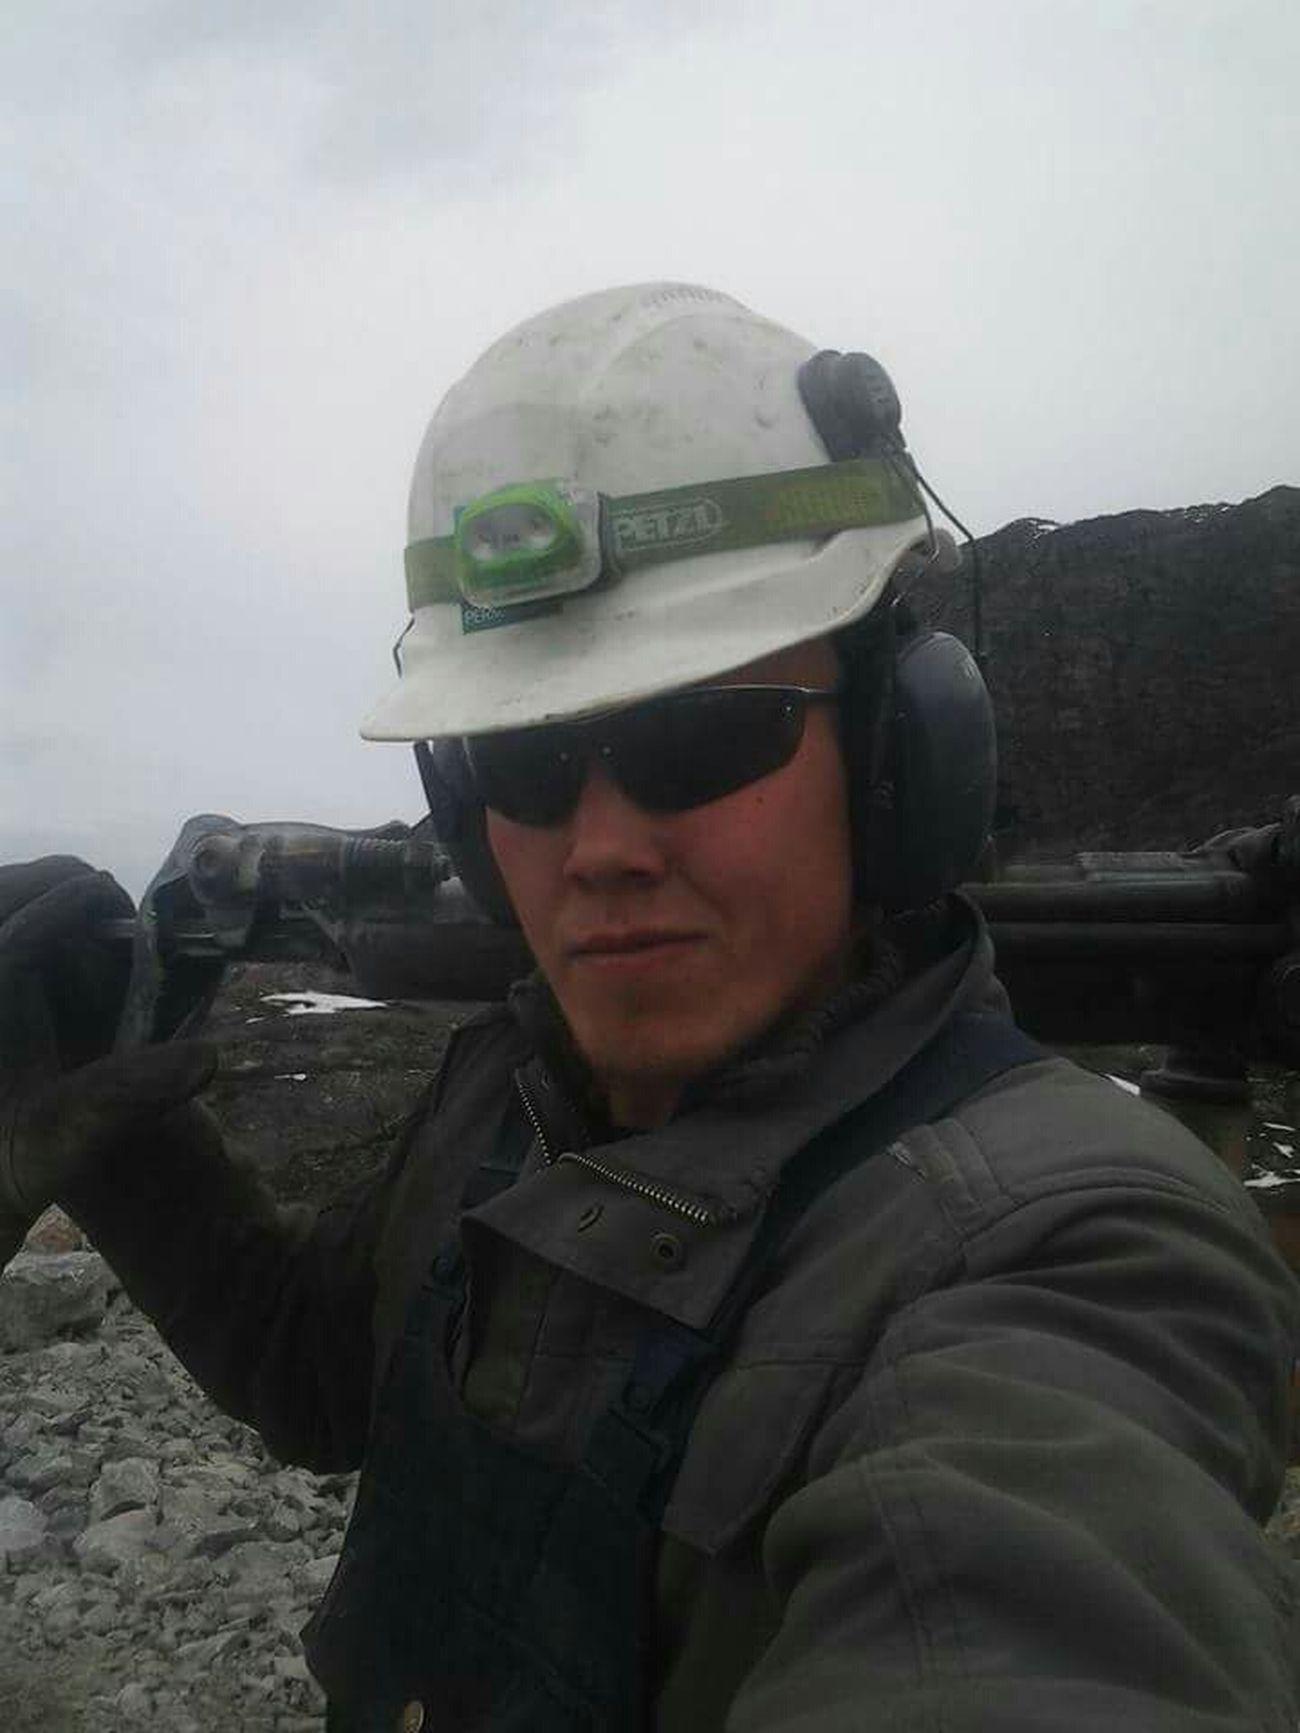 Took a Selfie ✌ after Drilling. Up North At Work Enjoying Life One Of My Favorite Things Hello World Selfienation Sisimiut